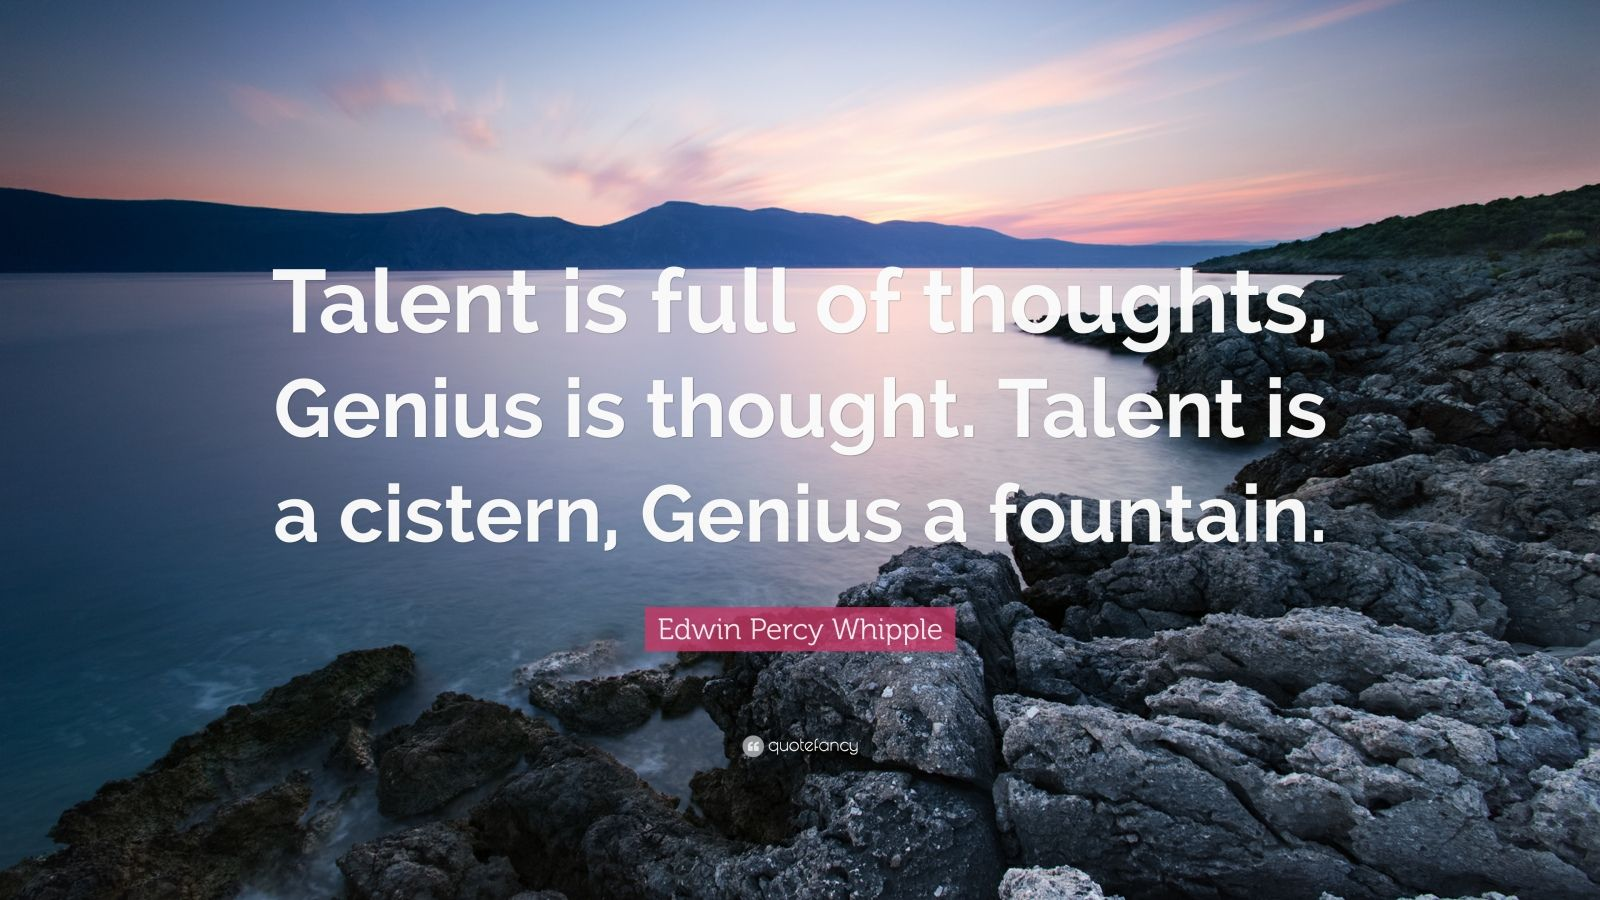 """Edwin Percy Whipple Quote: """"Talent is full of thoughts, Genius is thought. Talent is a cistern, Genius a fountain."""""""